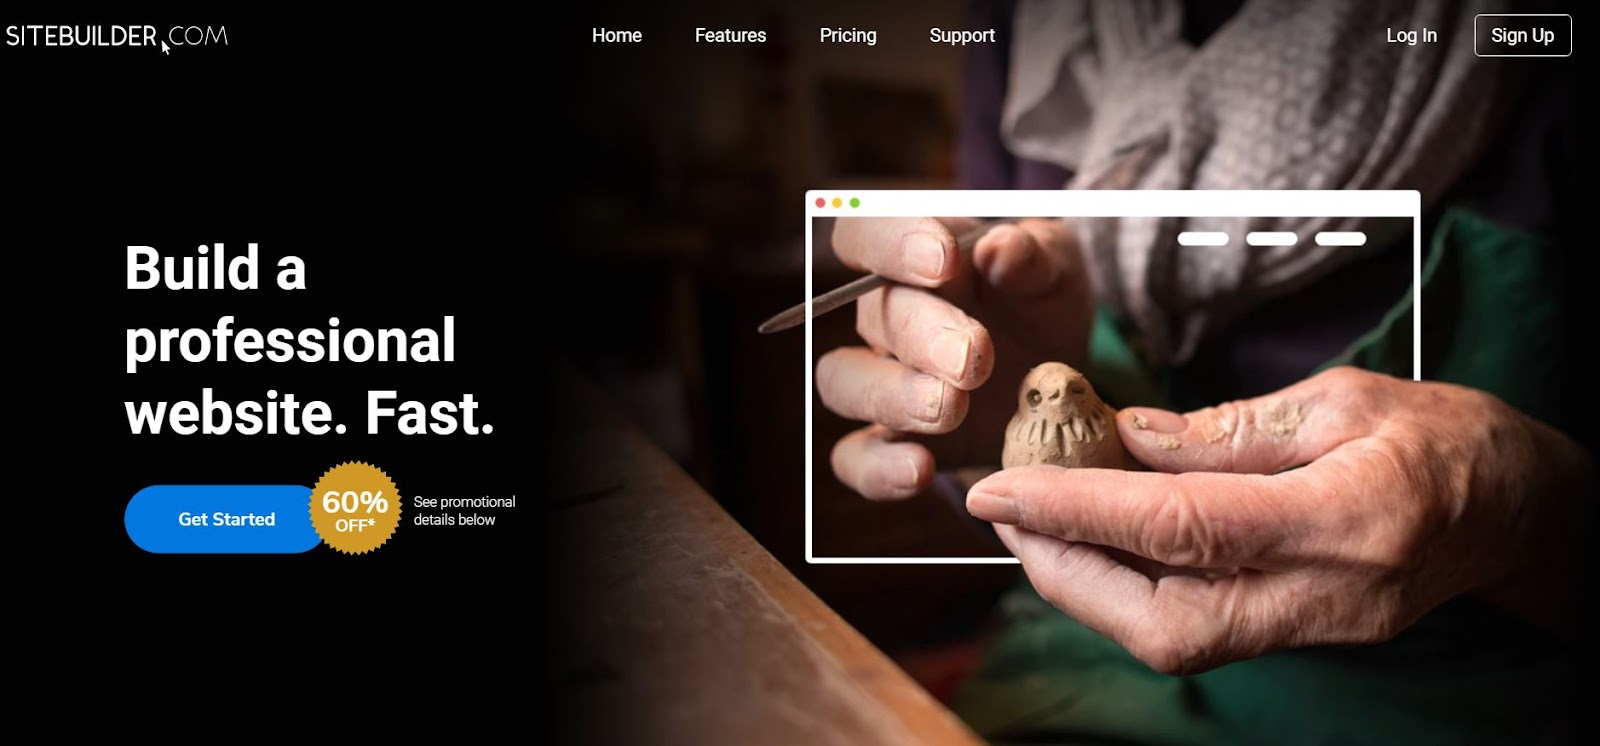 SiteBuilder: The Top 10 Website Platforms for Woodworkers and Makers